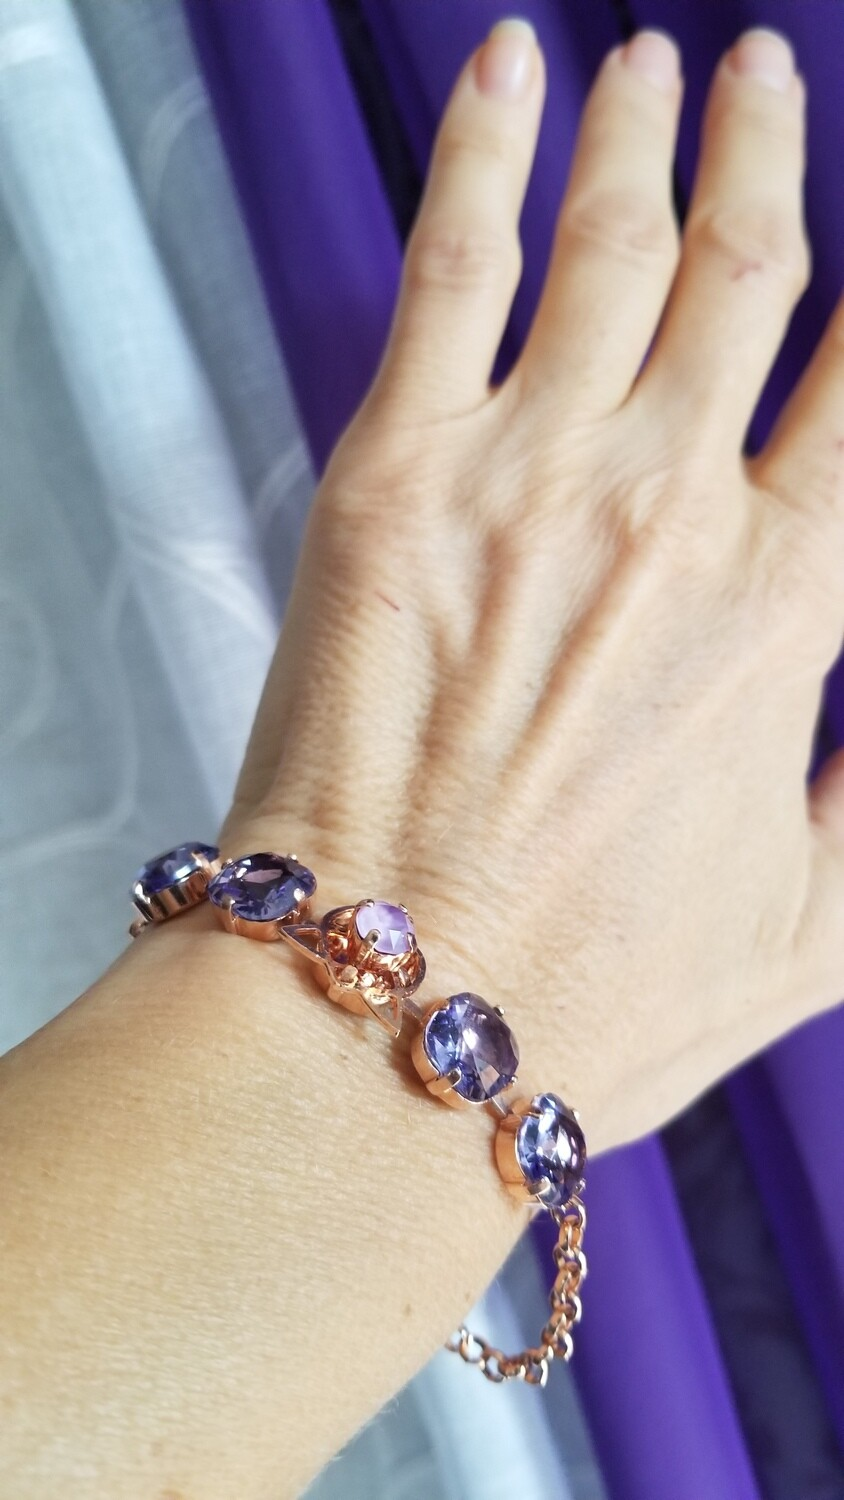 Stunning Violet Flame Protection Star of Lady Portia/ Devic Crystal LOVE Technology Bracelet/$144.00/188.00/CV Retreat Sale